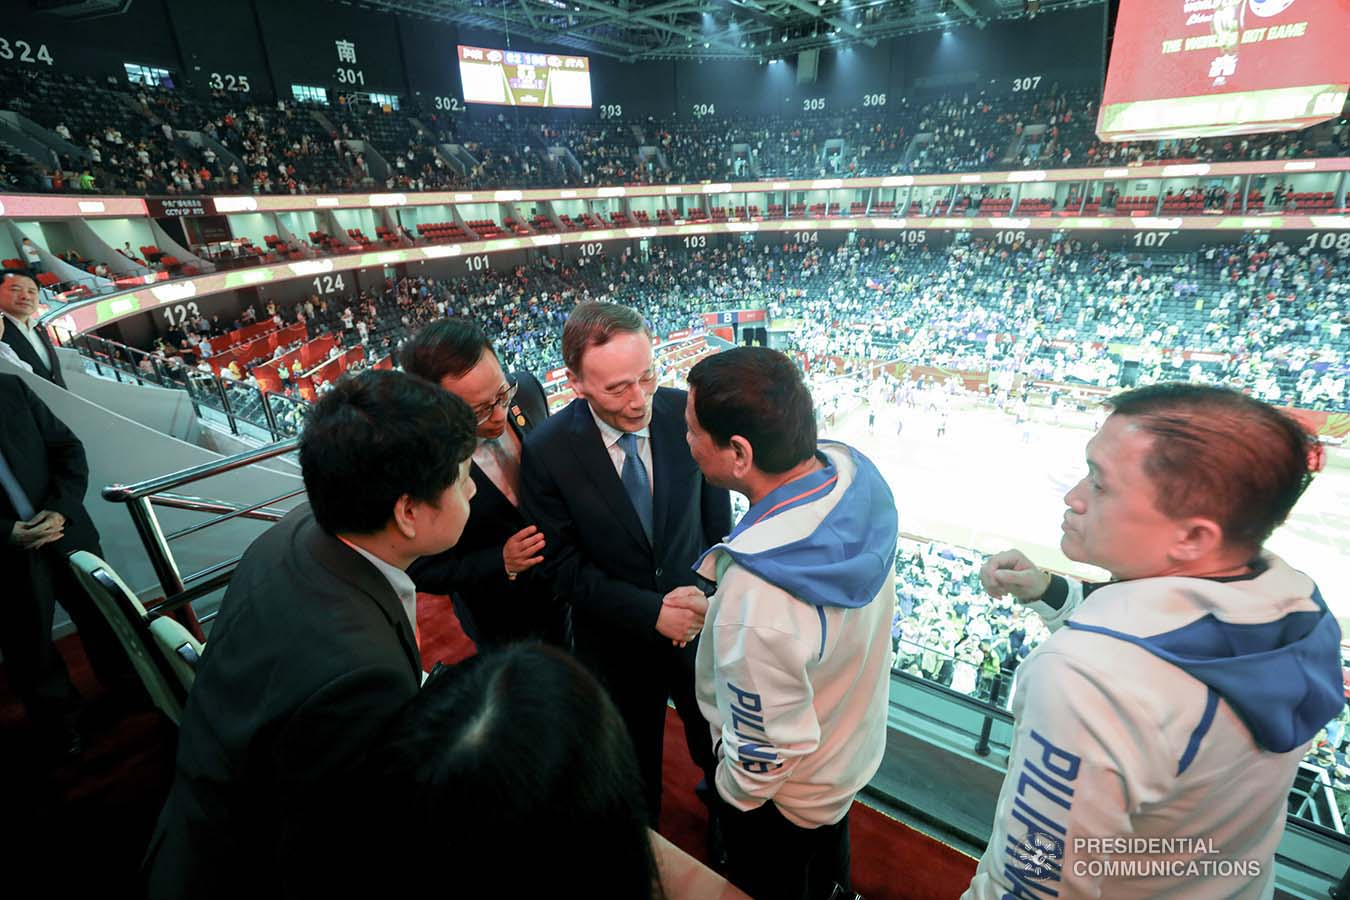 President Rodrigo Roa Duterte is given a warm welcome by People's Republic of China Vice President Wang Qishan upon his arrival at the Foshan International Sports and Cultural Center in Guangdong to watch the basketball match of Gilas Pilipinas against Italy during the FIBA Basketball World Cup 2019 game on August 31, 2019.  SIMEON CELI/ PRESIDENTIAL PHOTO